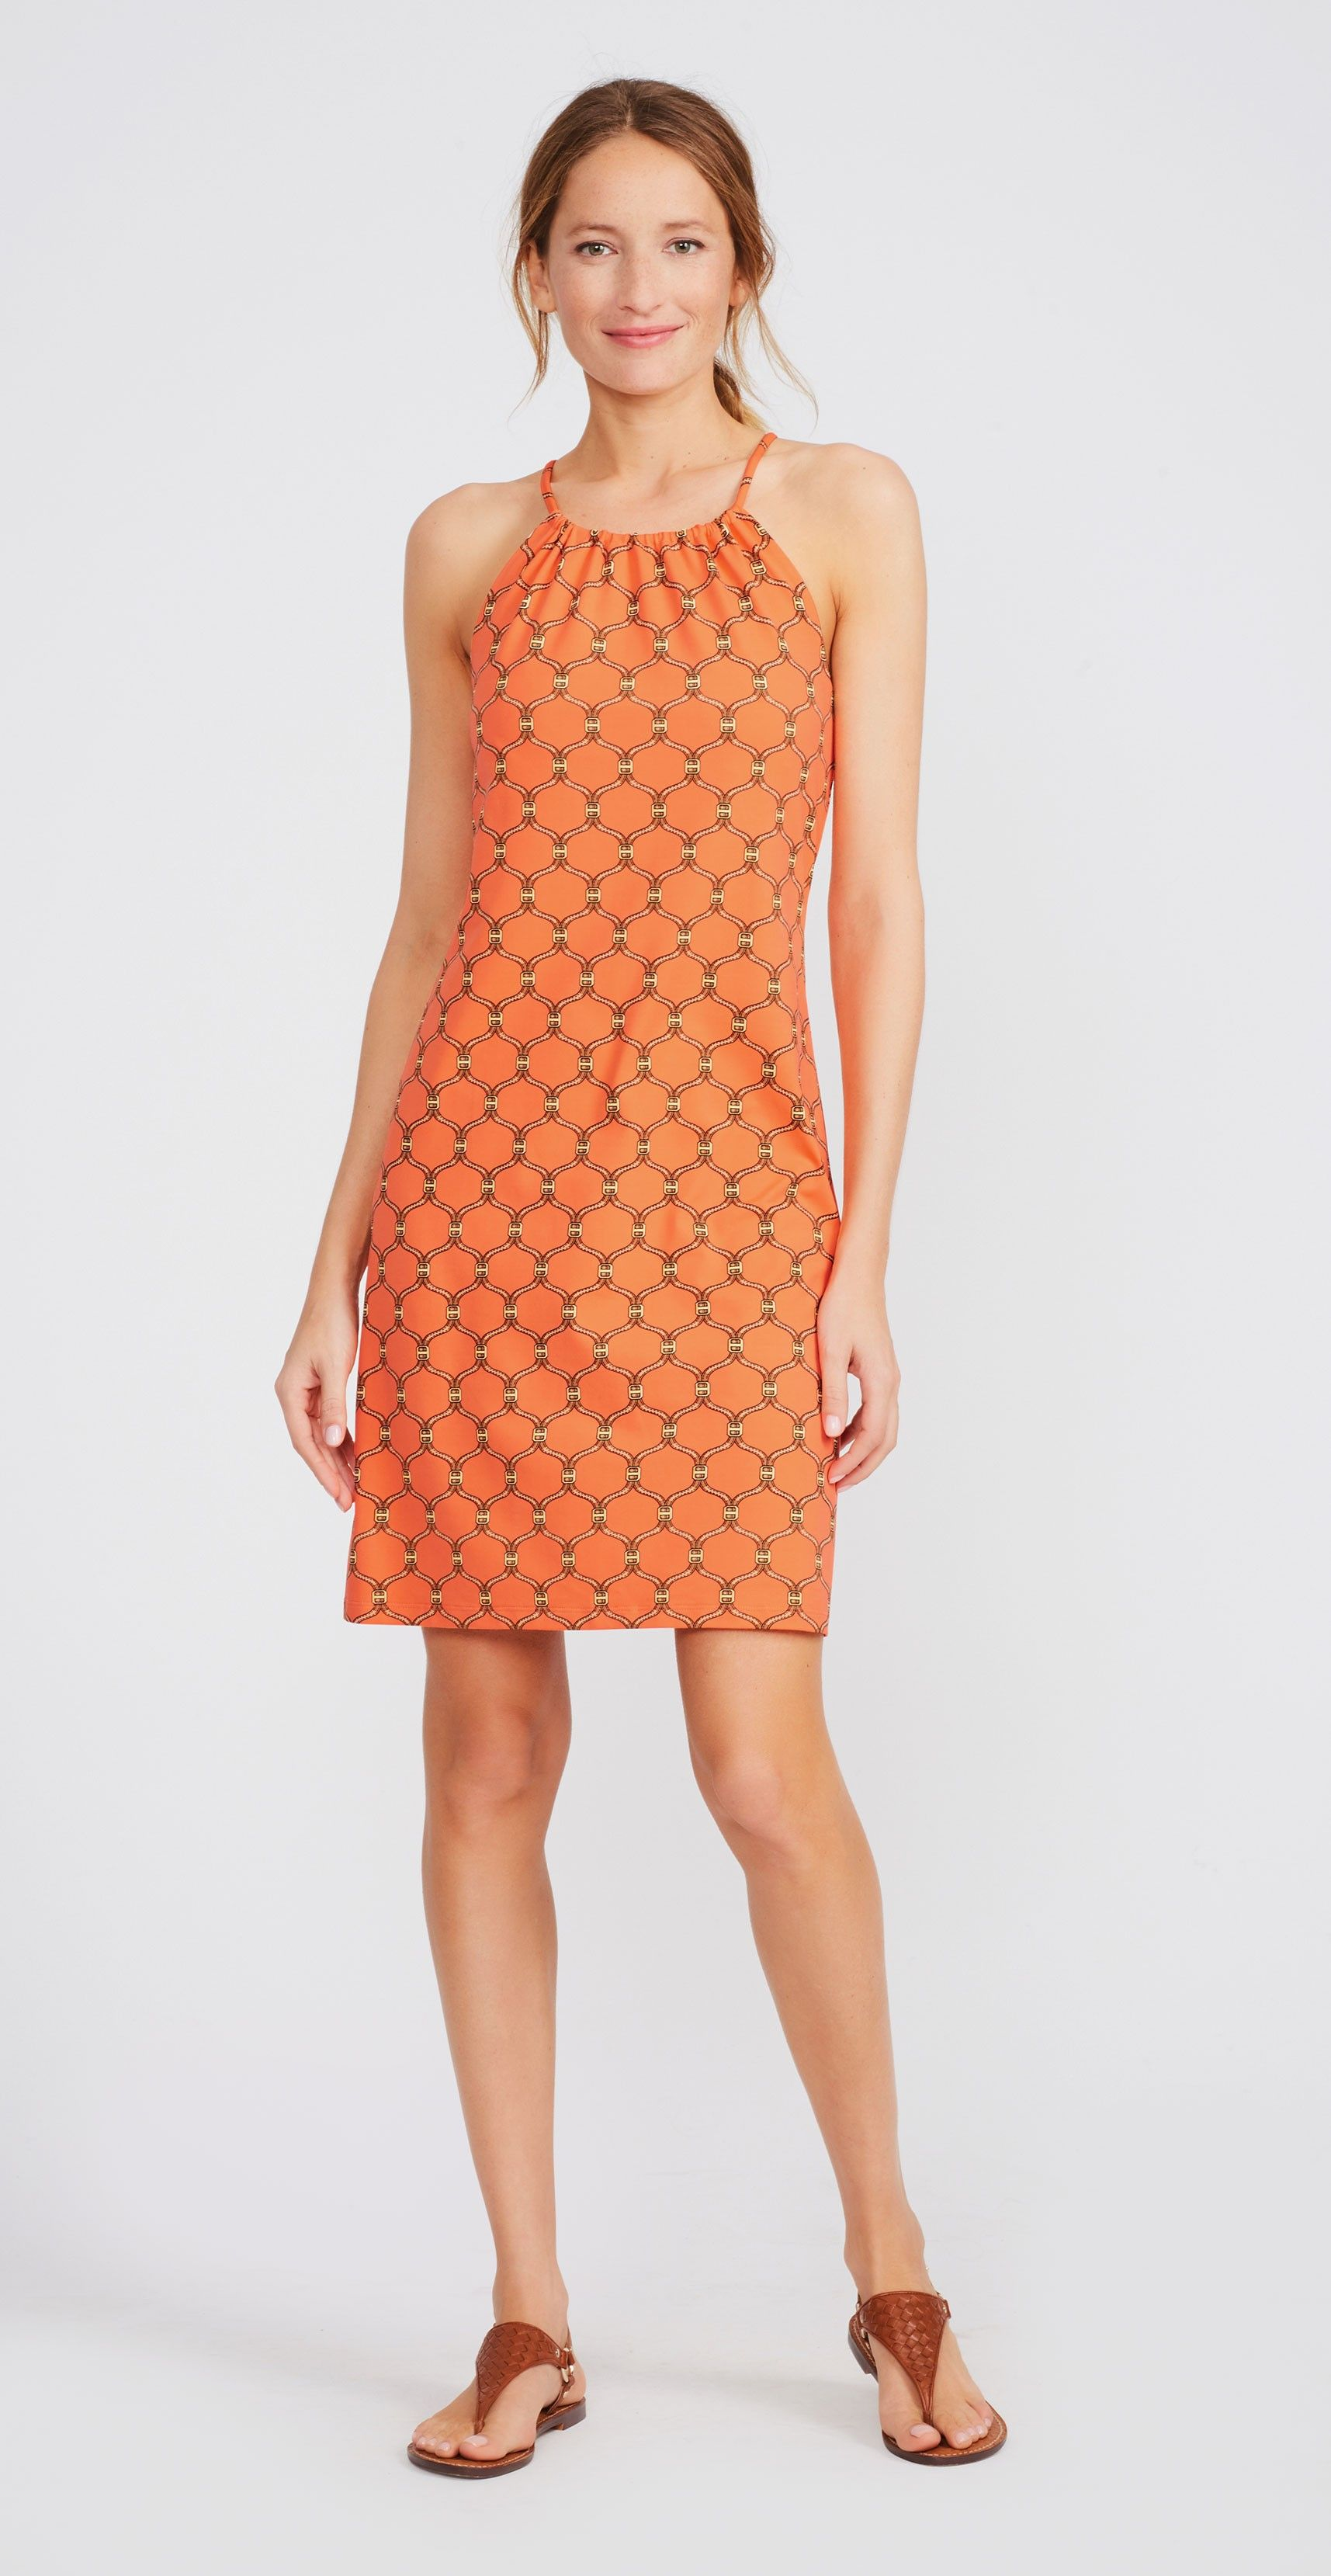 J.McLaughlin - Maria Halter Dress in